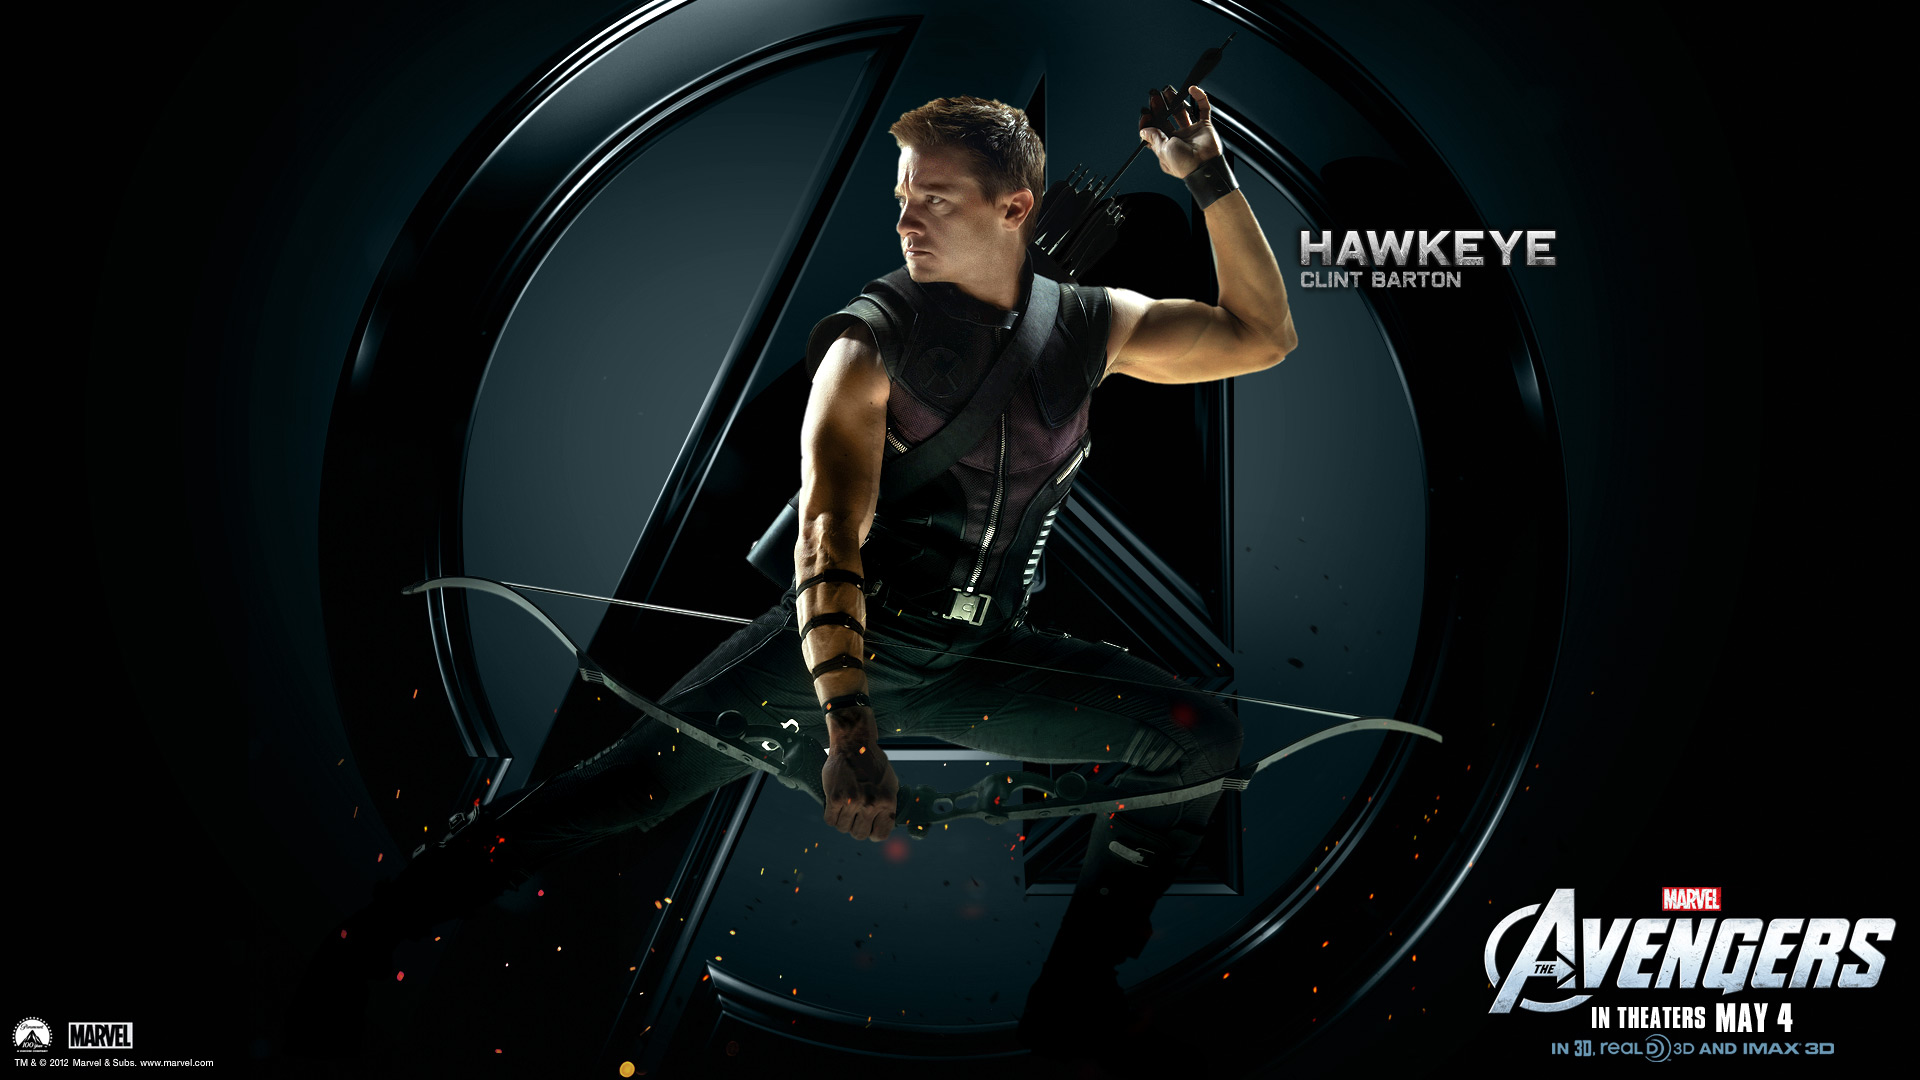 Marvels Avengers Wallpapers HD The Avengers Hawkeye HD Wallpapers 1920x1080